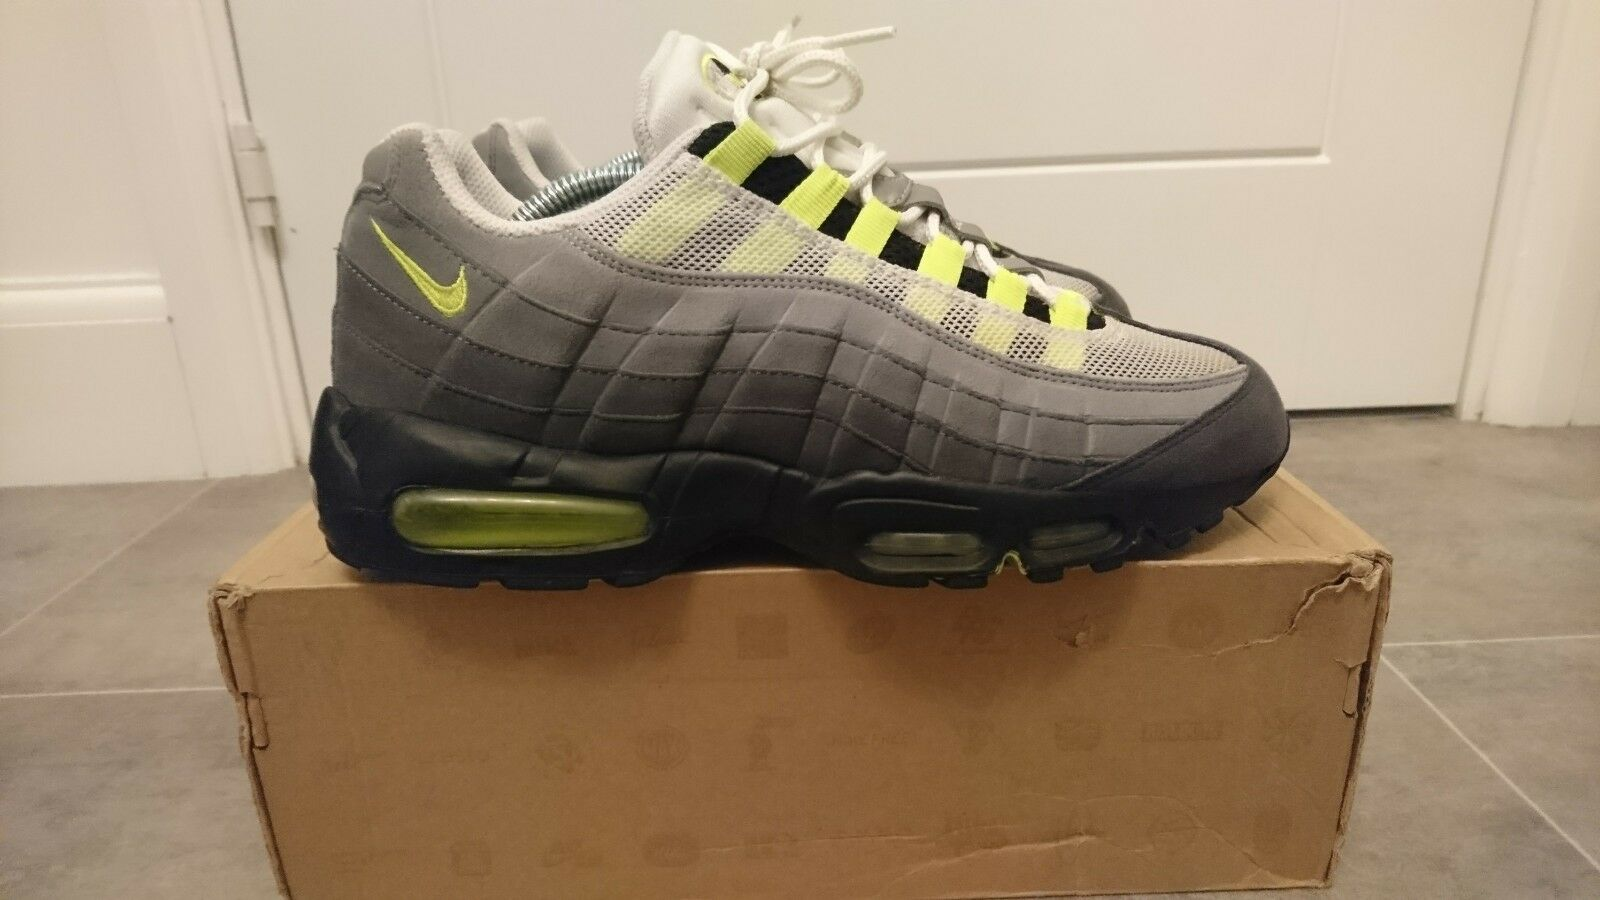 Nike air max 95 95 95 OG uk Größe 8.5 uk 3m TN bw classic 93 180 87 90 98 neon ⚡ volt 44ec74